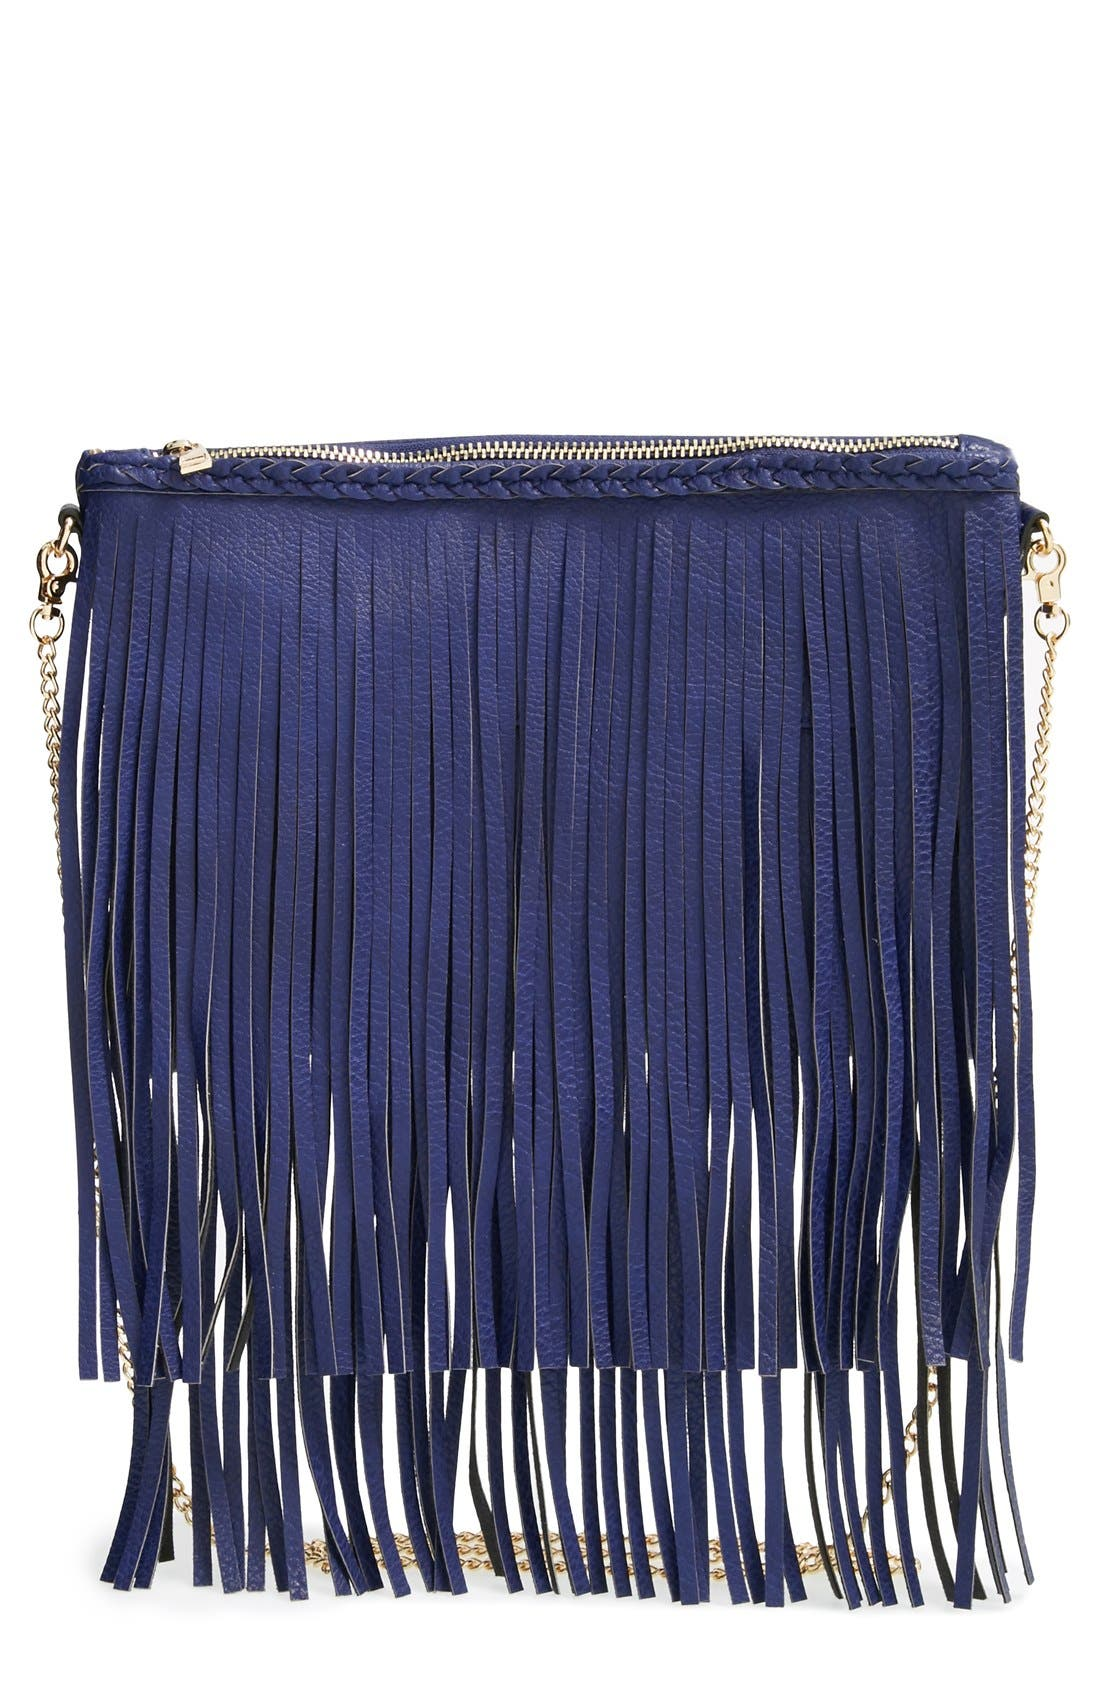 Alternate Image 1 Selected - Sole Society 'Rose' Fringe Faux Leather Convertible Crossbody Bag